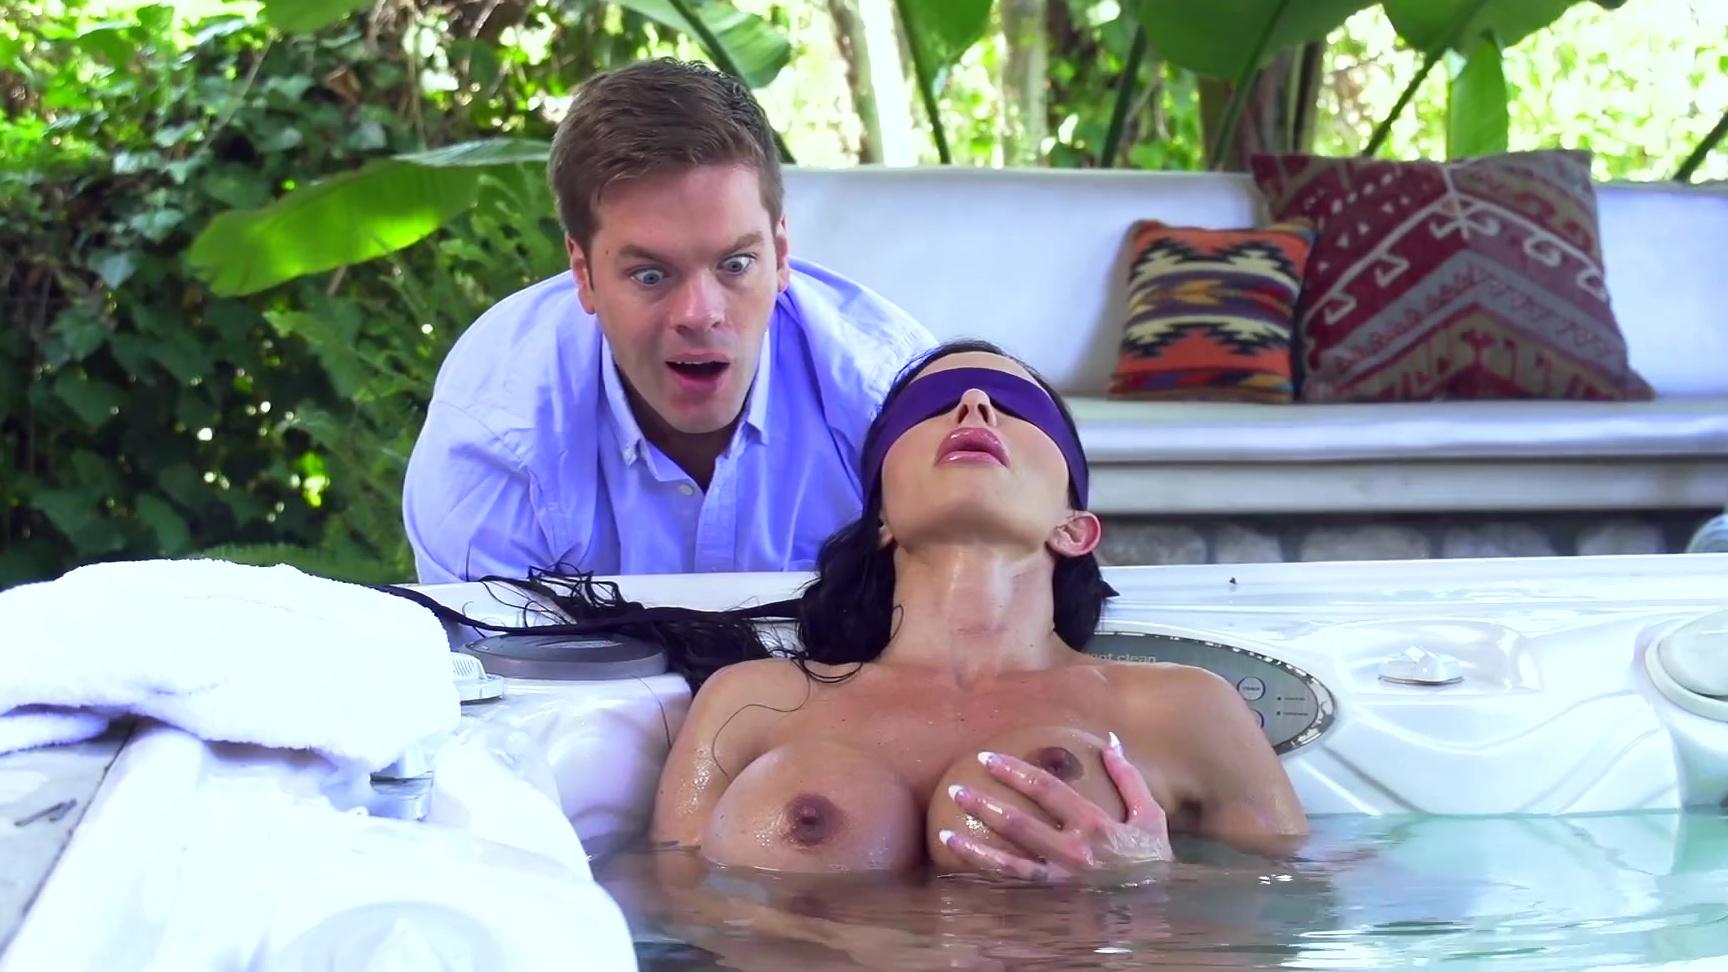 Can recommend brazzers jewels jade my friends mom blindfolded what